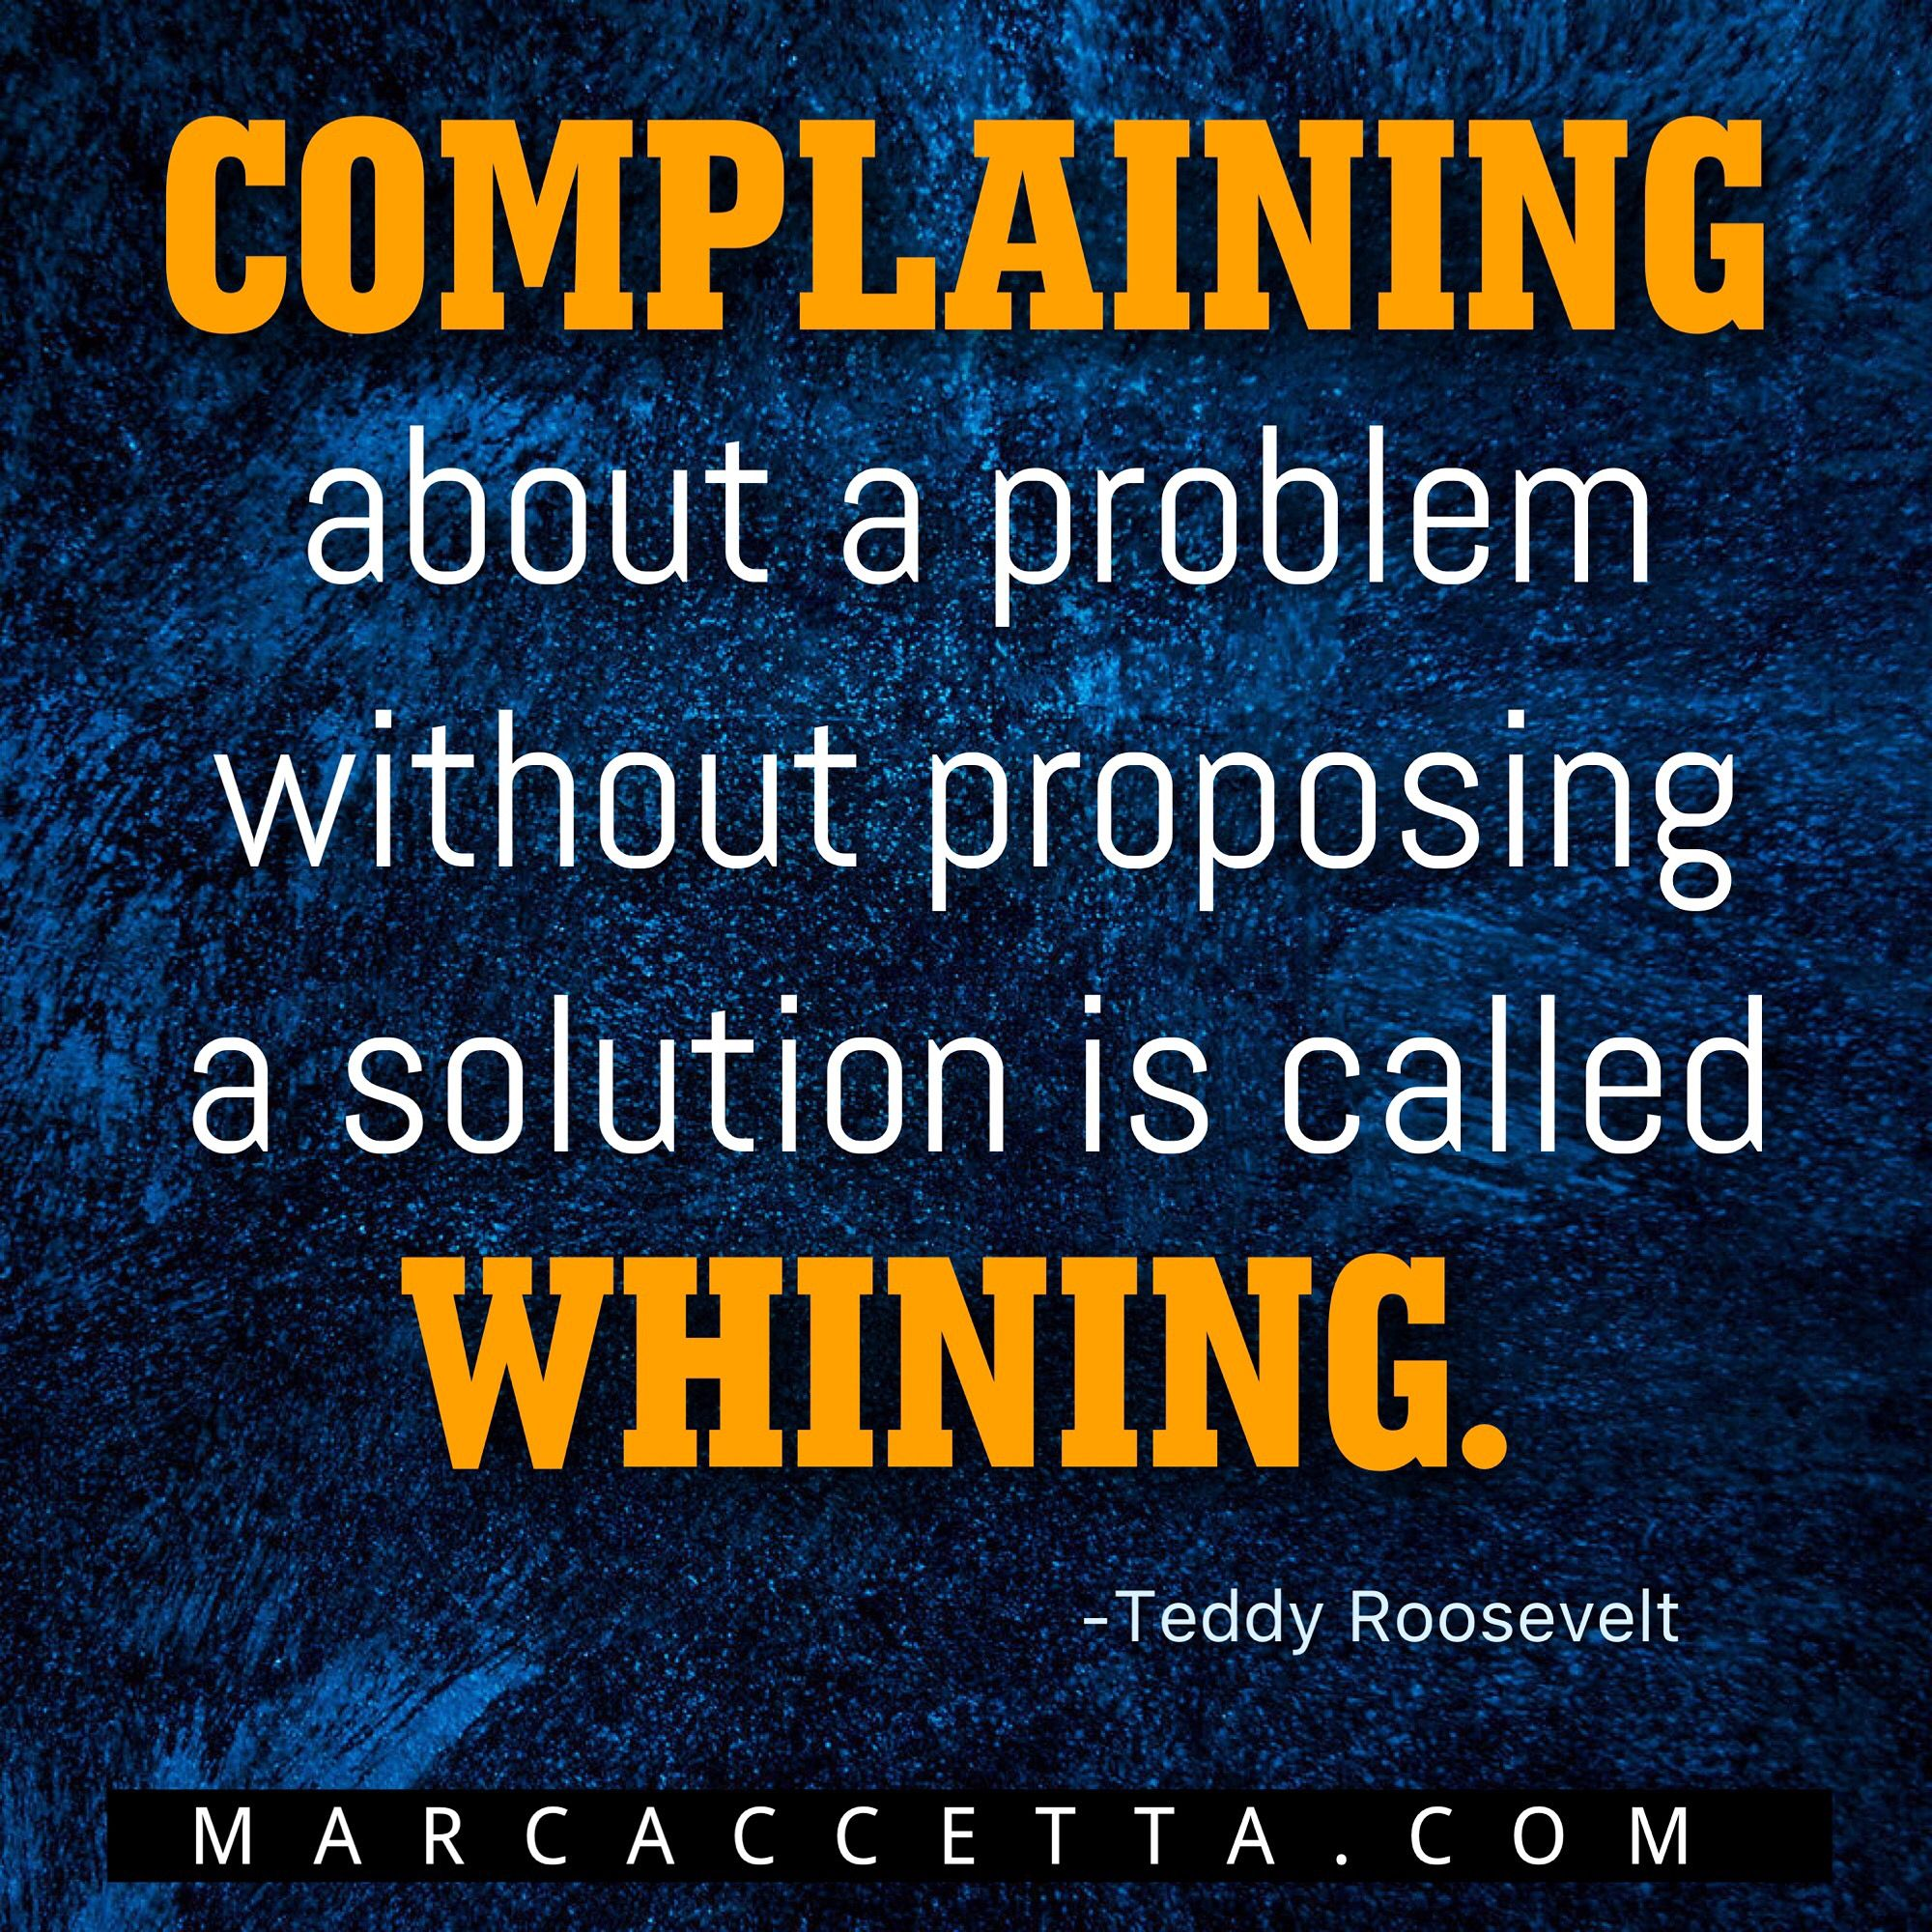 COMPLAINING about a problem without proposing a solution is called WHINING. -Teddy Roosevelt #complaining #quotes #quoteoftheday #whining #quotestoliveby